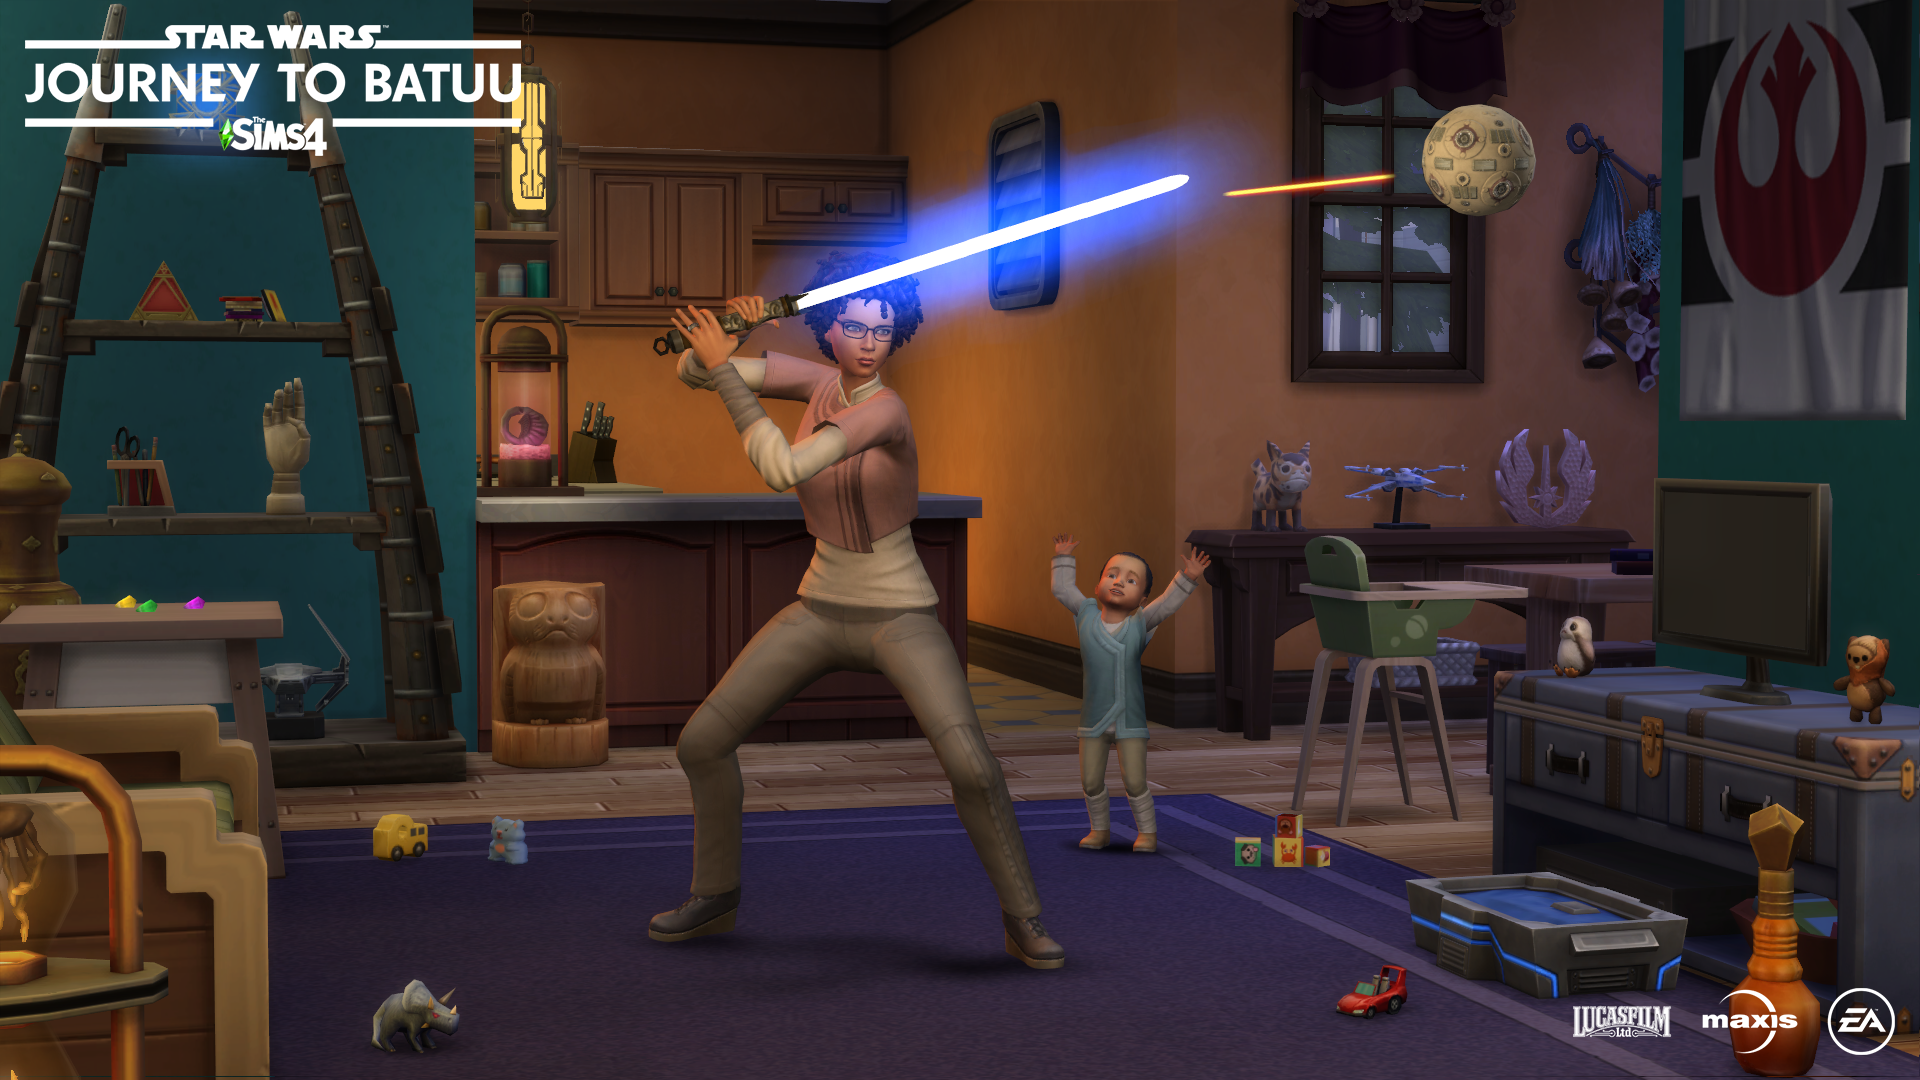 Sim playing with lightsaber back home